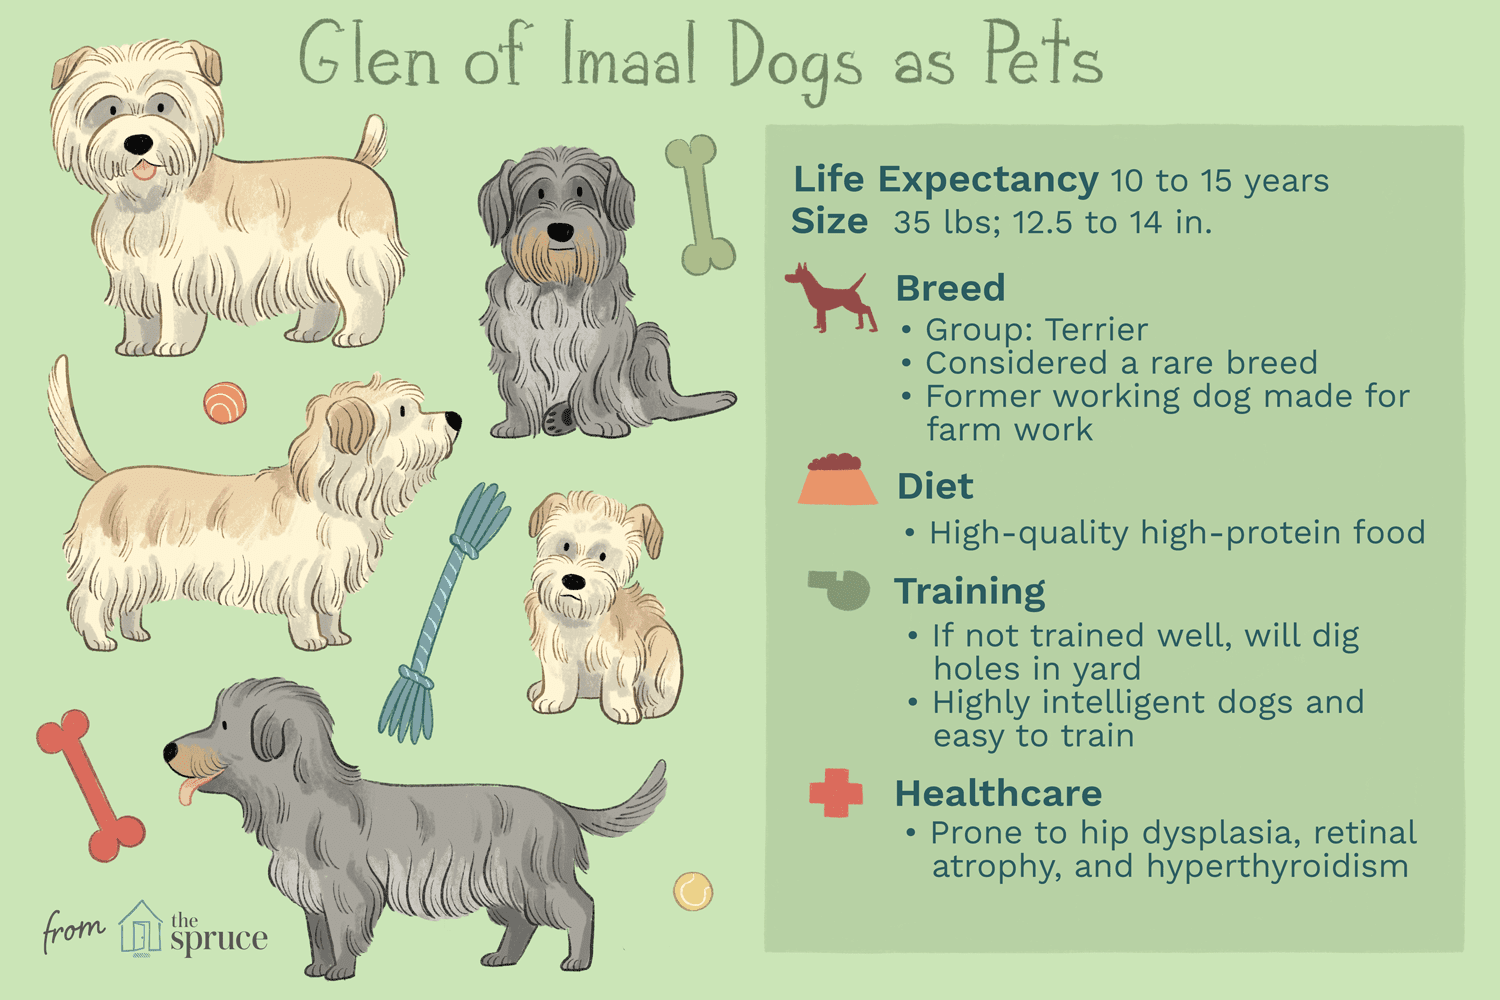 glen of imaal dogs as pets illustration